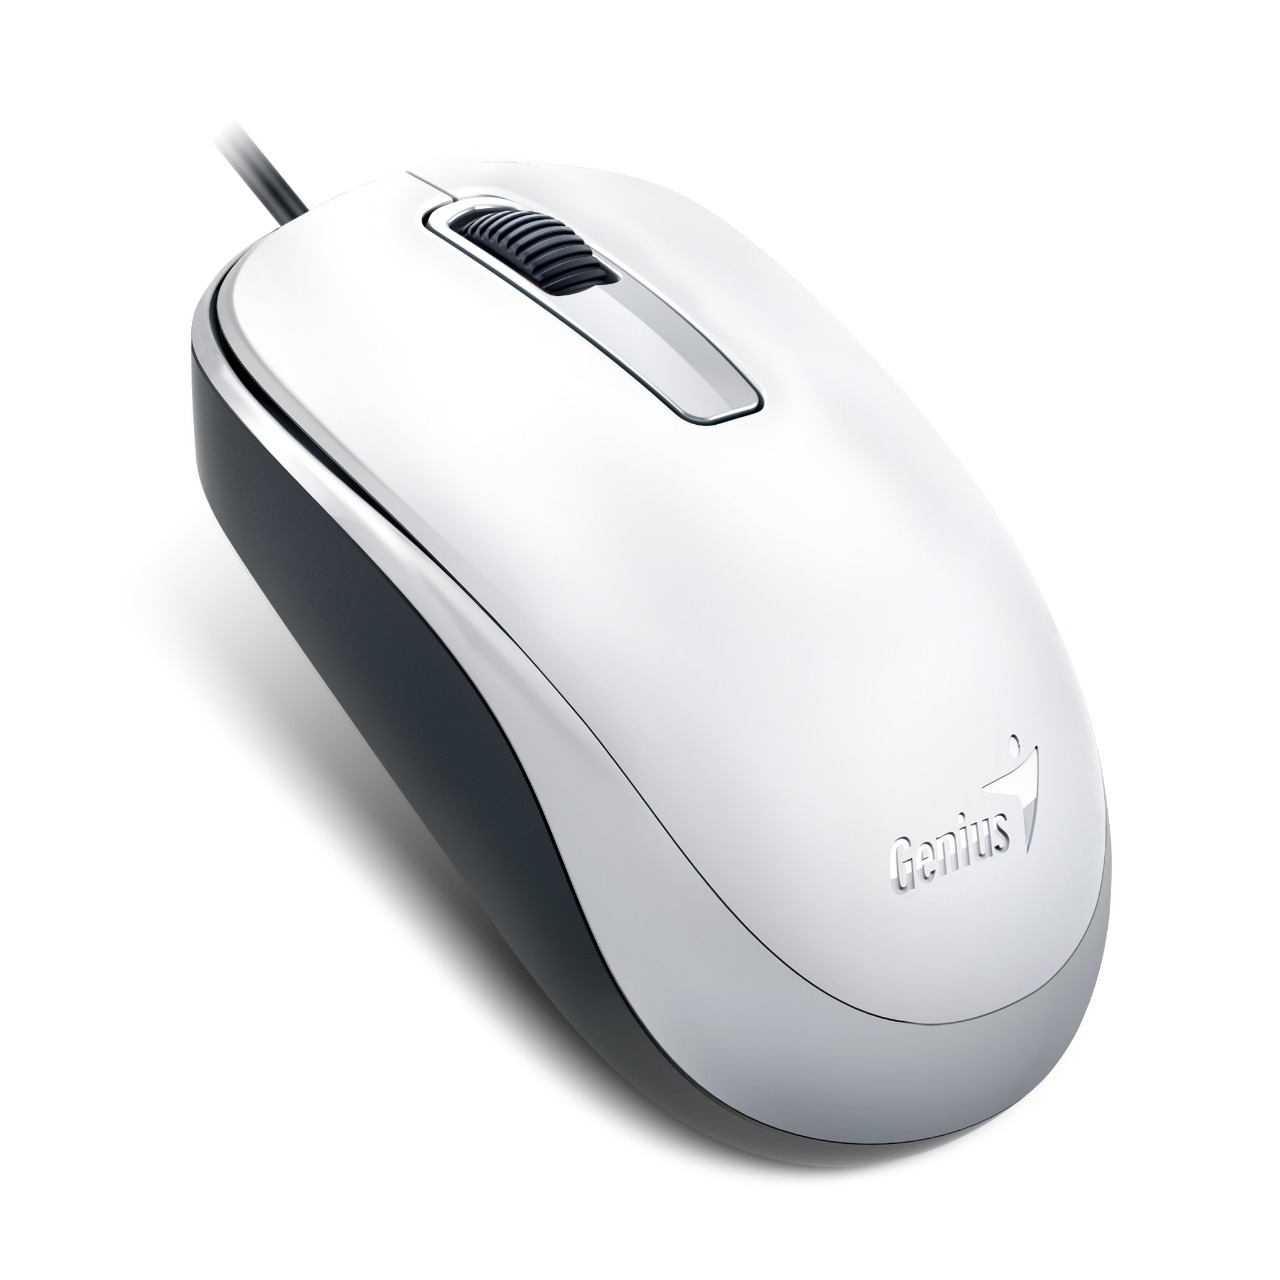 WHOLESALE MOUSE : DX-125, COMFORT USE, 3 BUTTON SCROLL USB,1000 DPI USB,WHITE_2